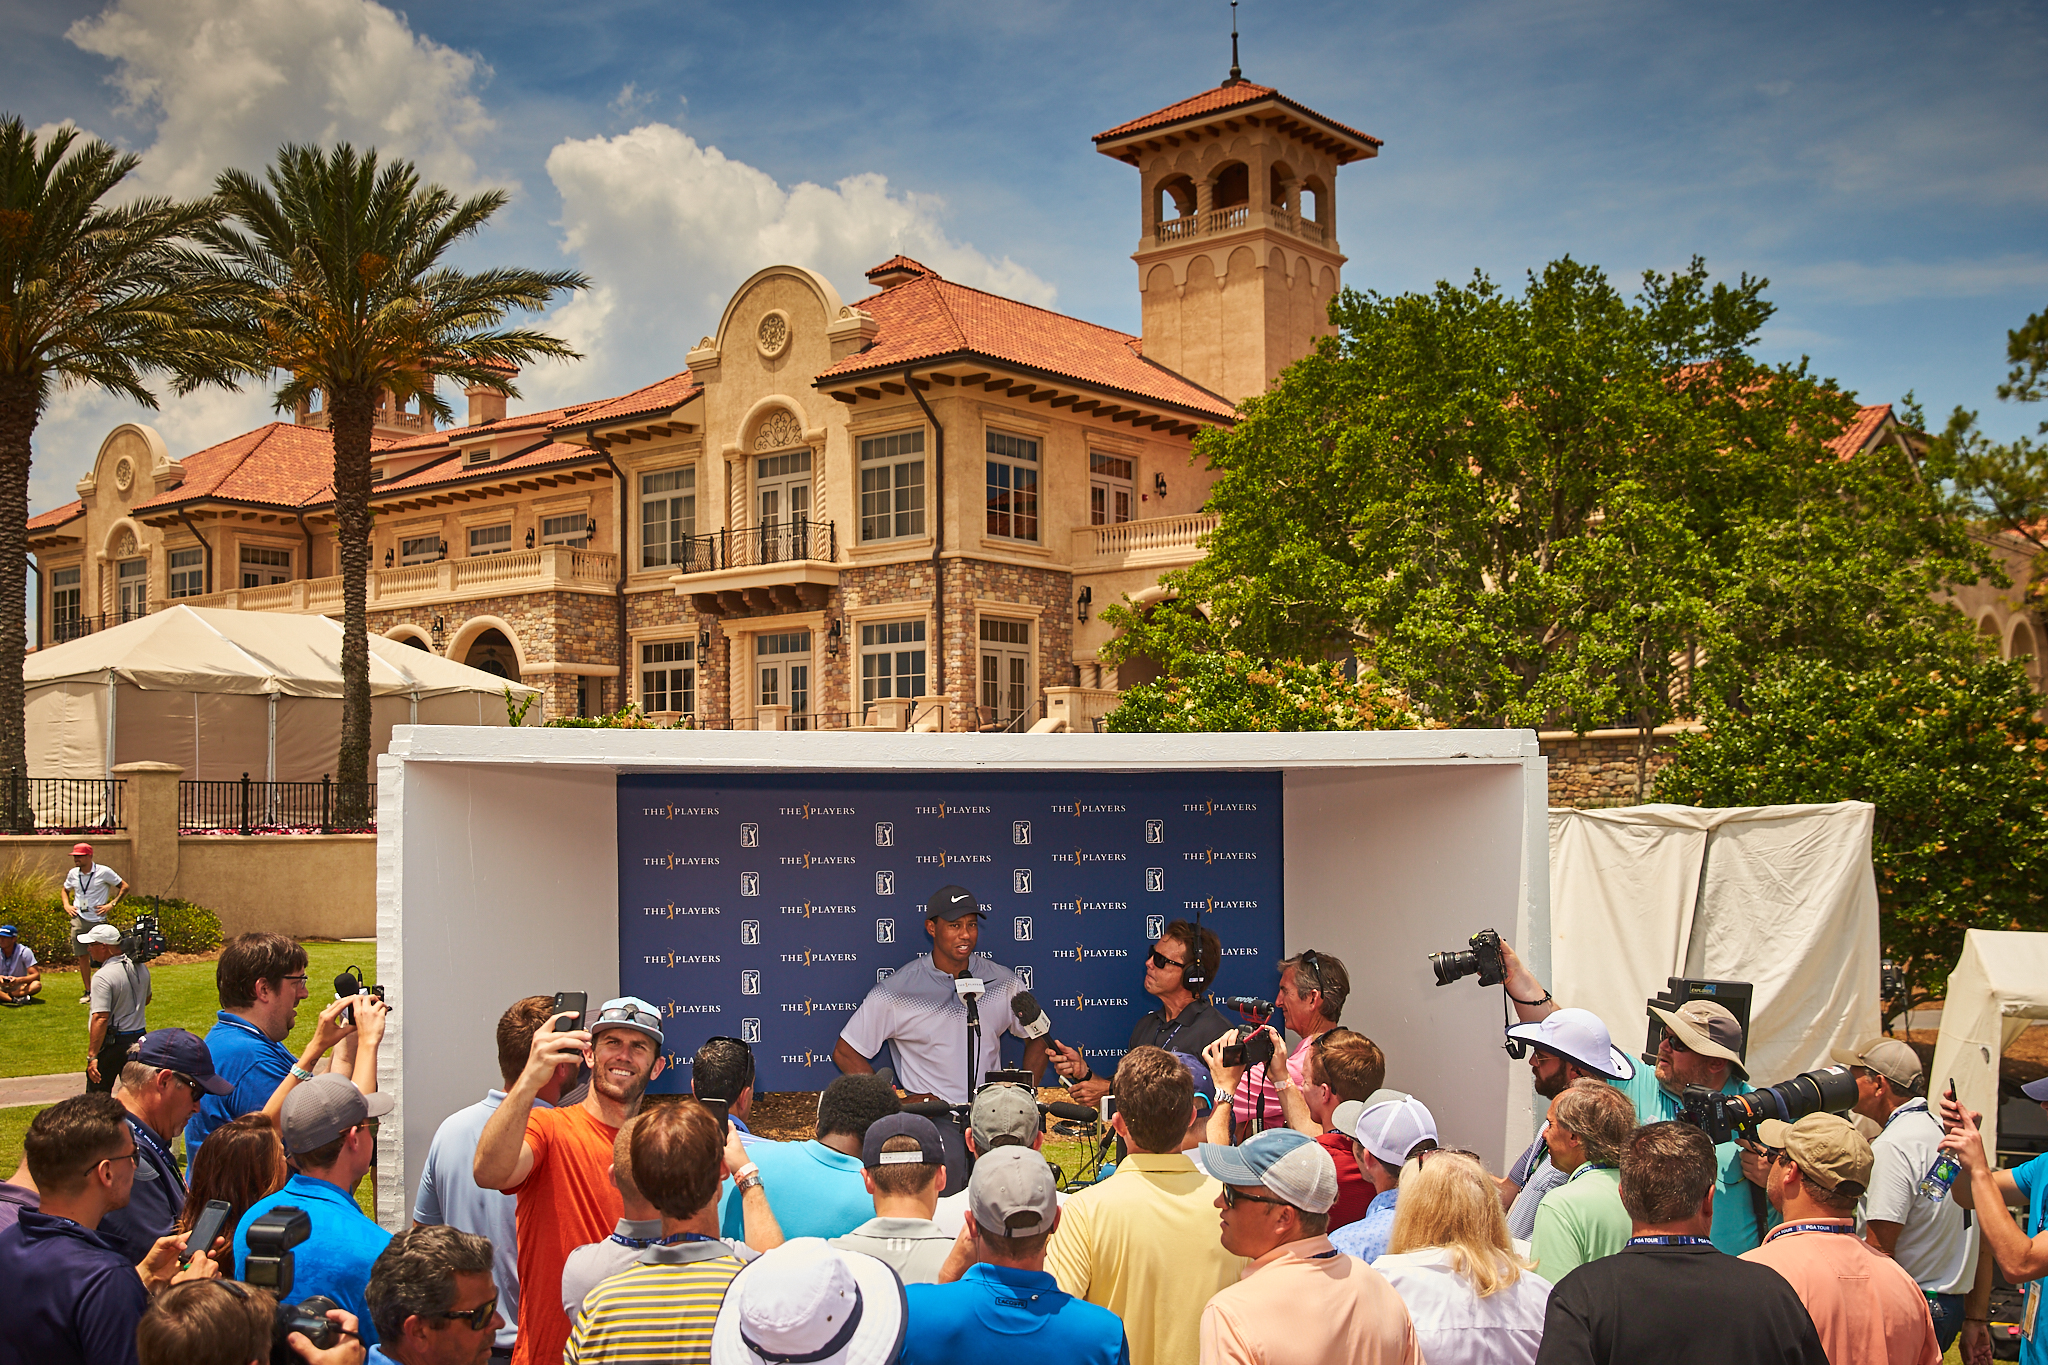 Tiger Woods and friends, 2018 The Players Championship, TPC Sawgrass for the PGA Tour.  Canon 1DX, Canon EF 24-70mm f2.8L